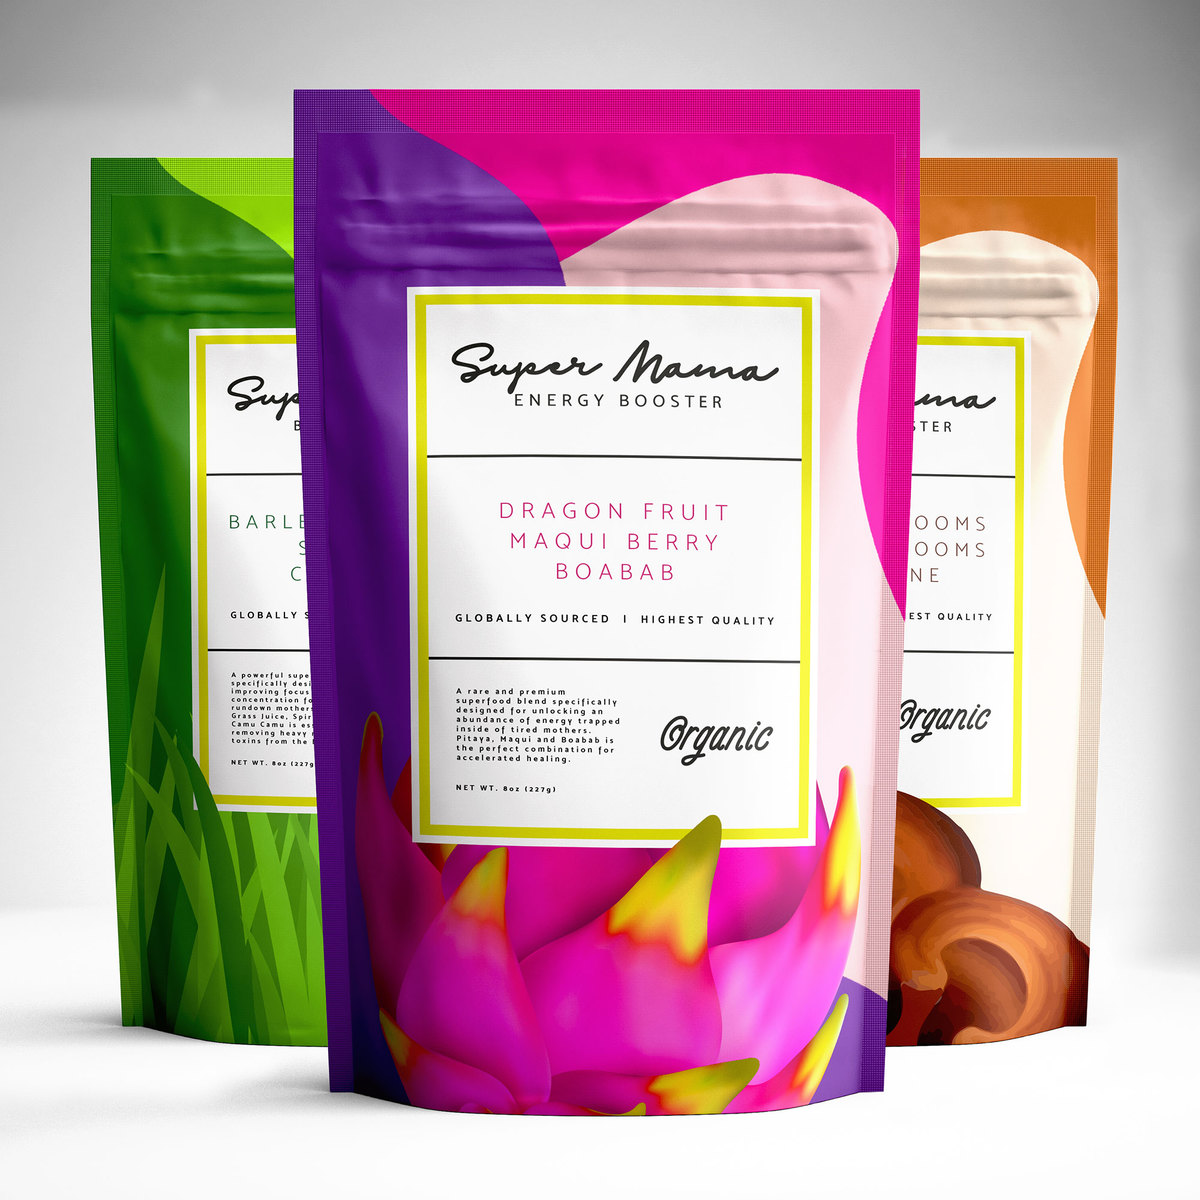 Supplement Packaging Bag Designs for SuperMama Booster Product Line